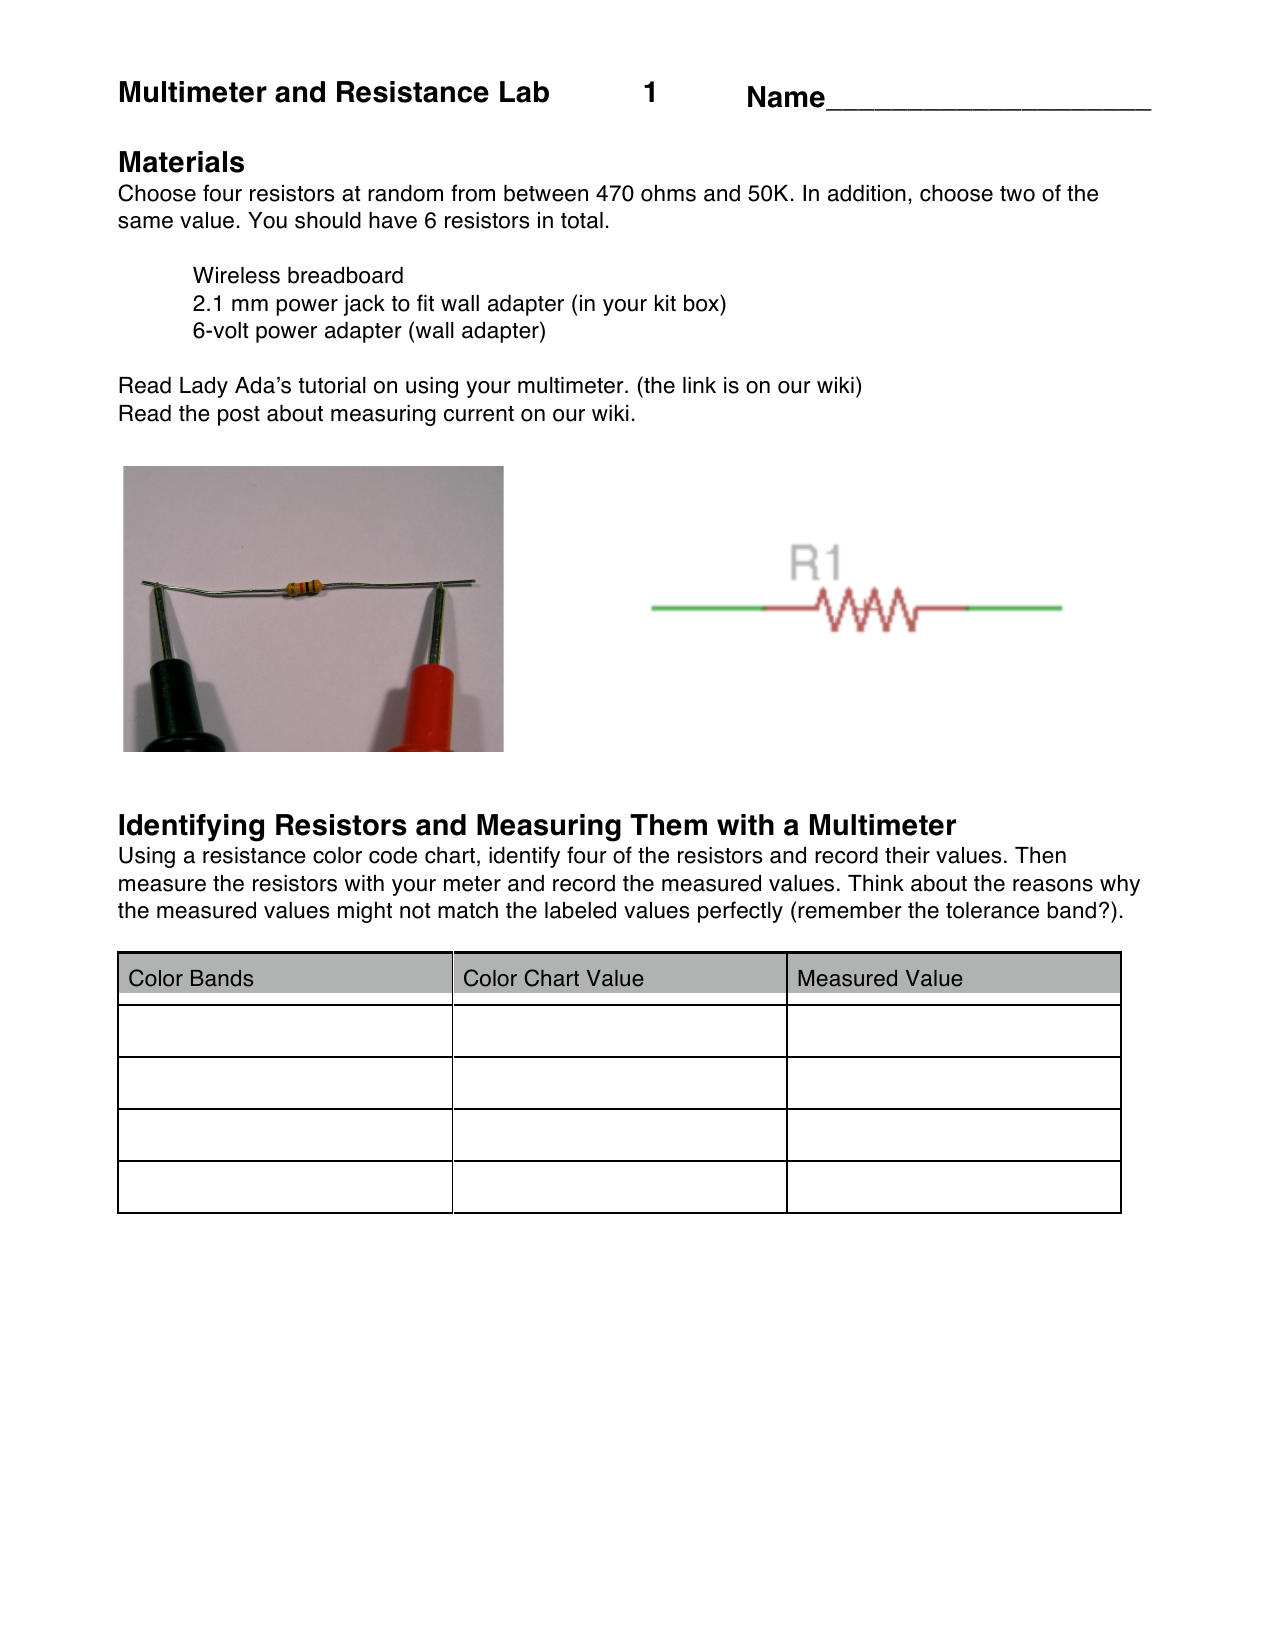 Multimeter and resistance lab 1 materials identifying resistors and nvjuhfo Images